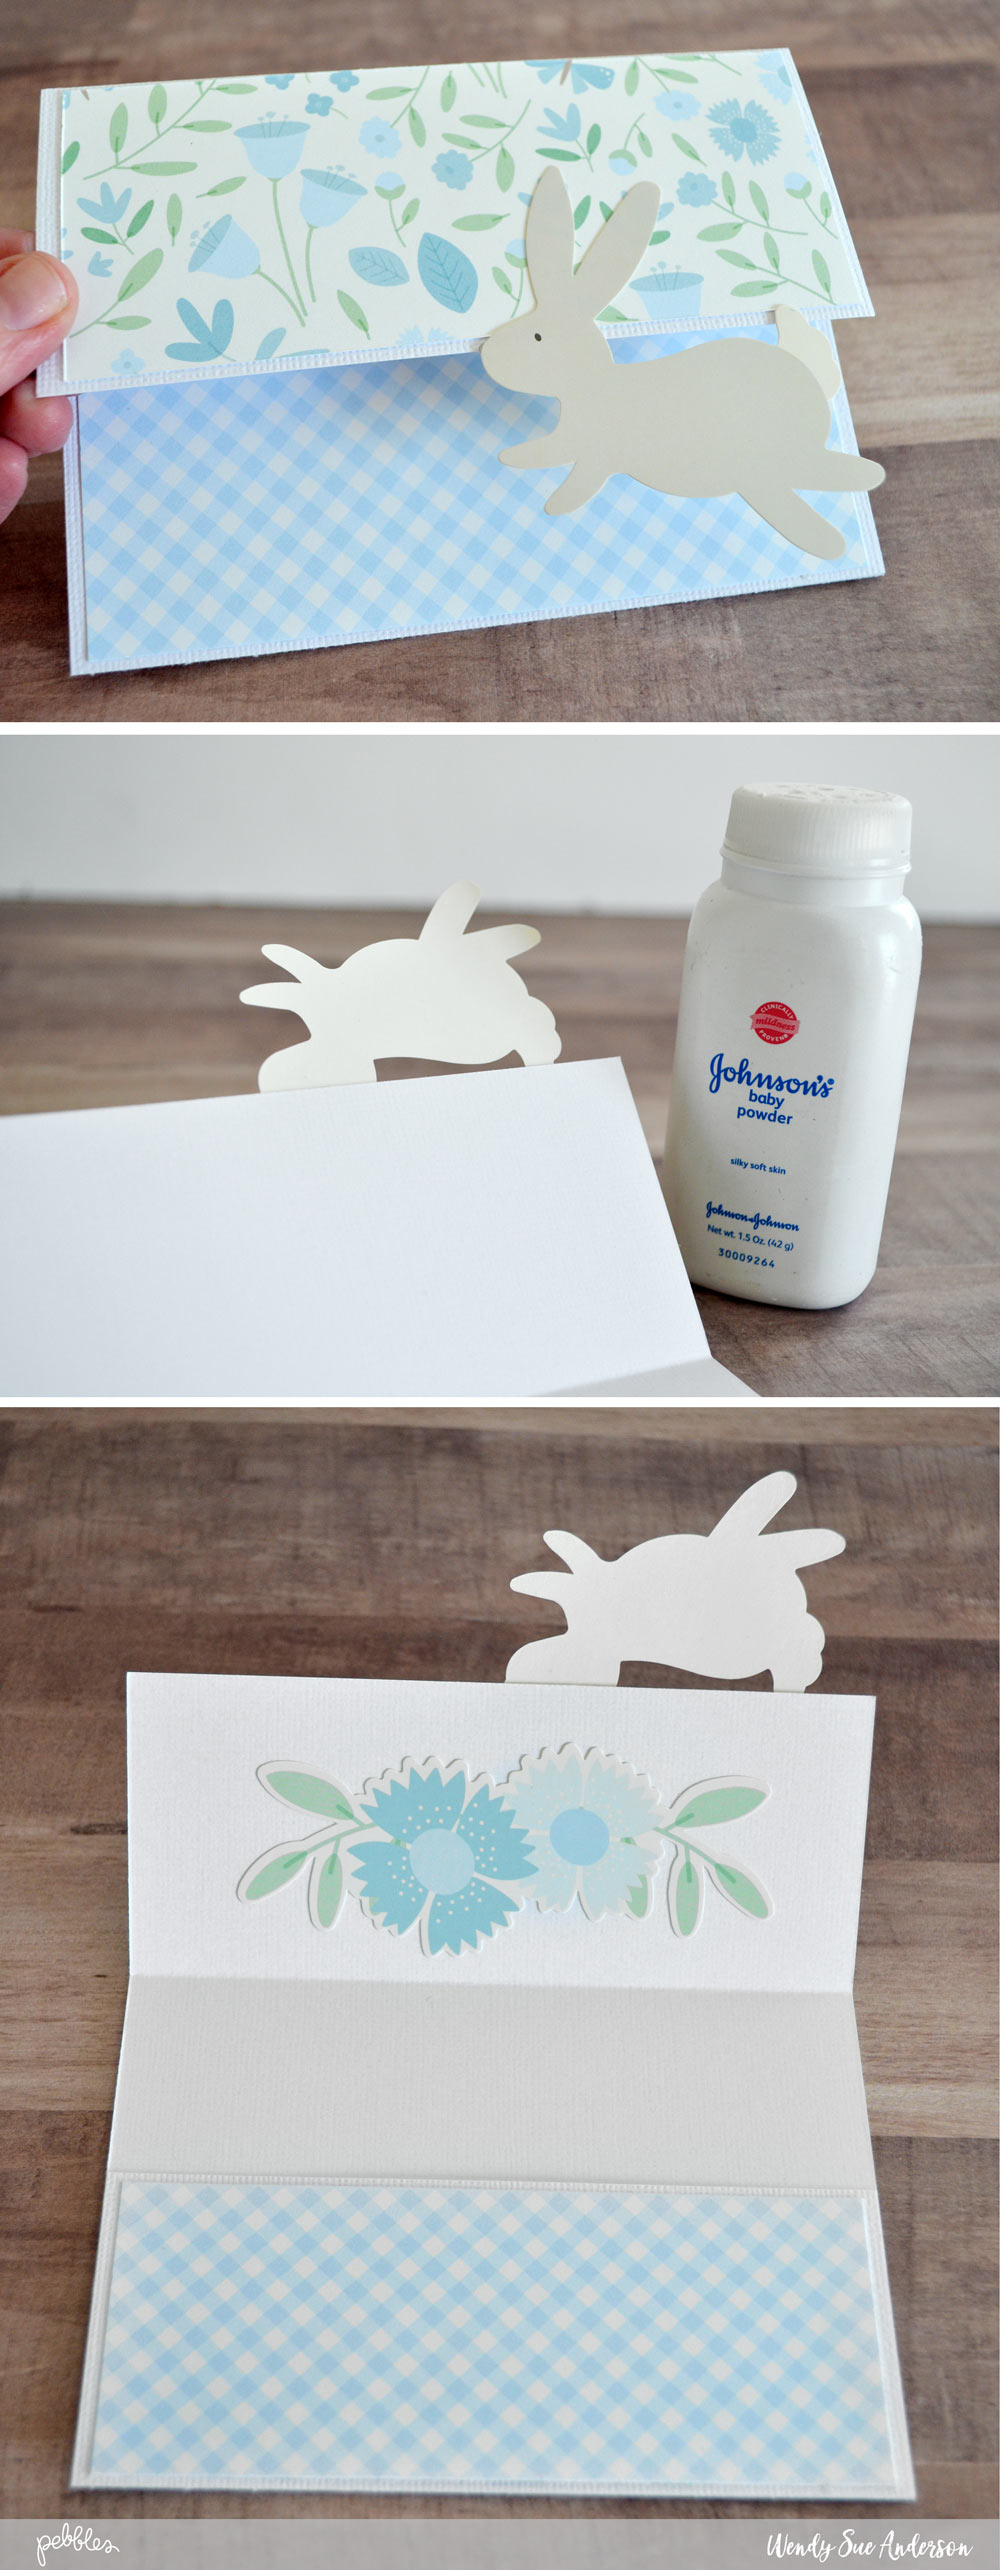 "Send some happy Easter mail this year! @wendysue used our ""Lullaby"" collection to create these cute pocket cards! check it out on the @PebblesInc. blog!"